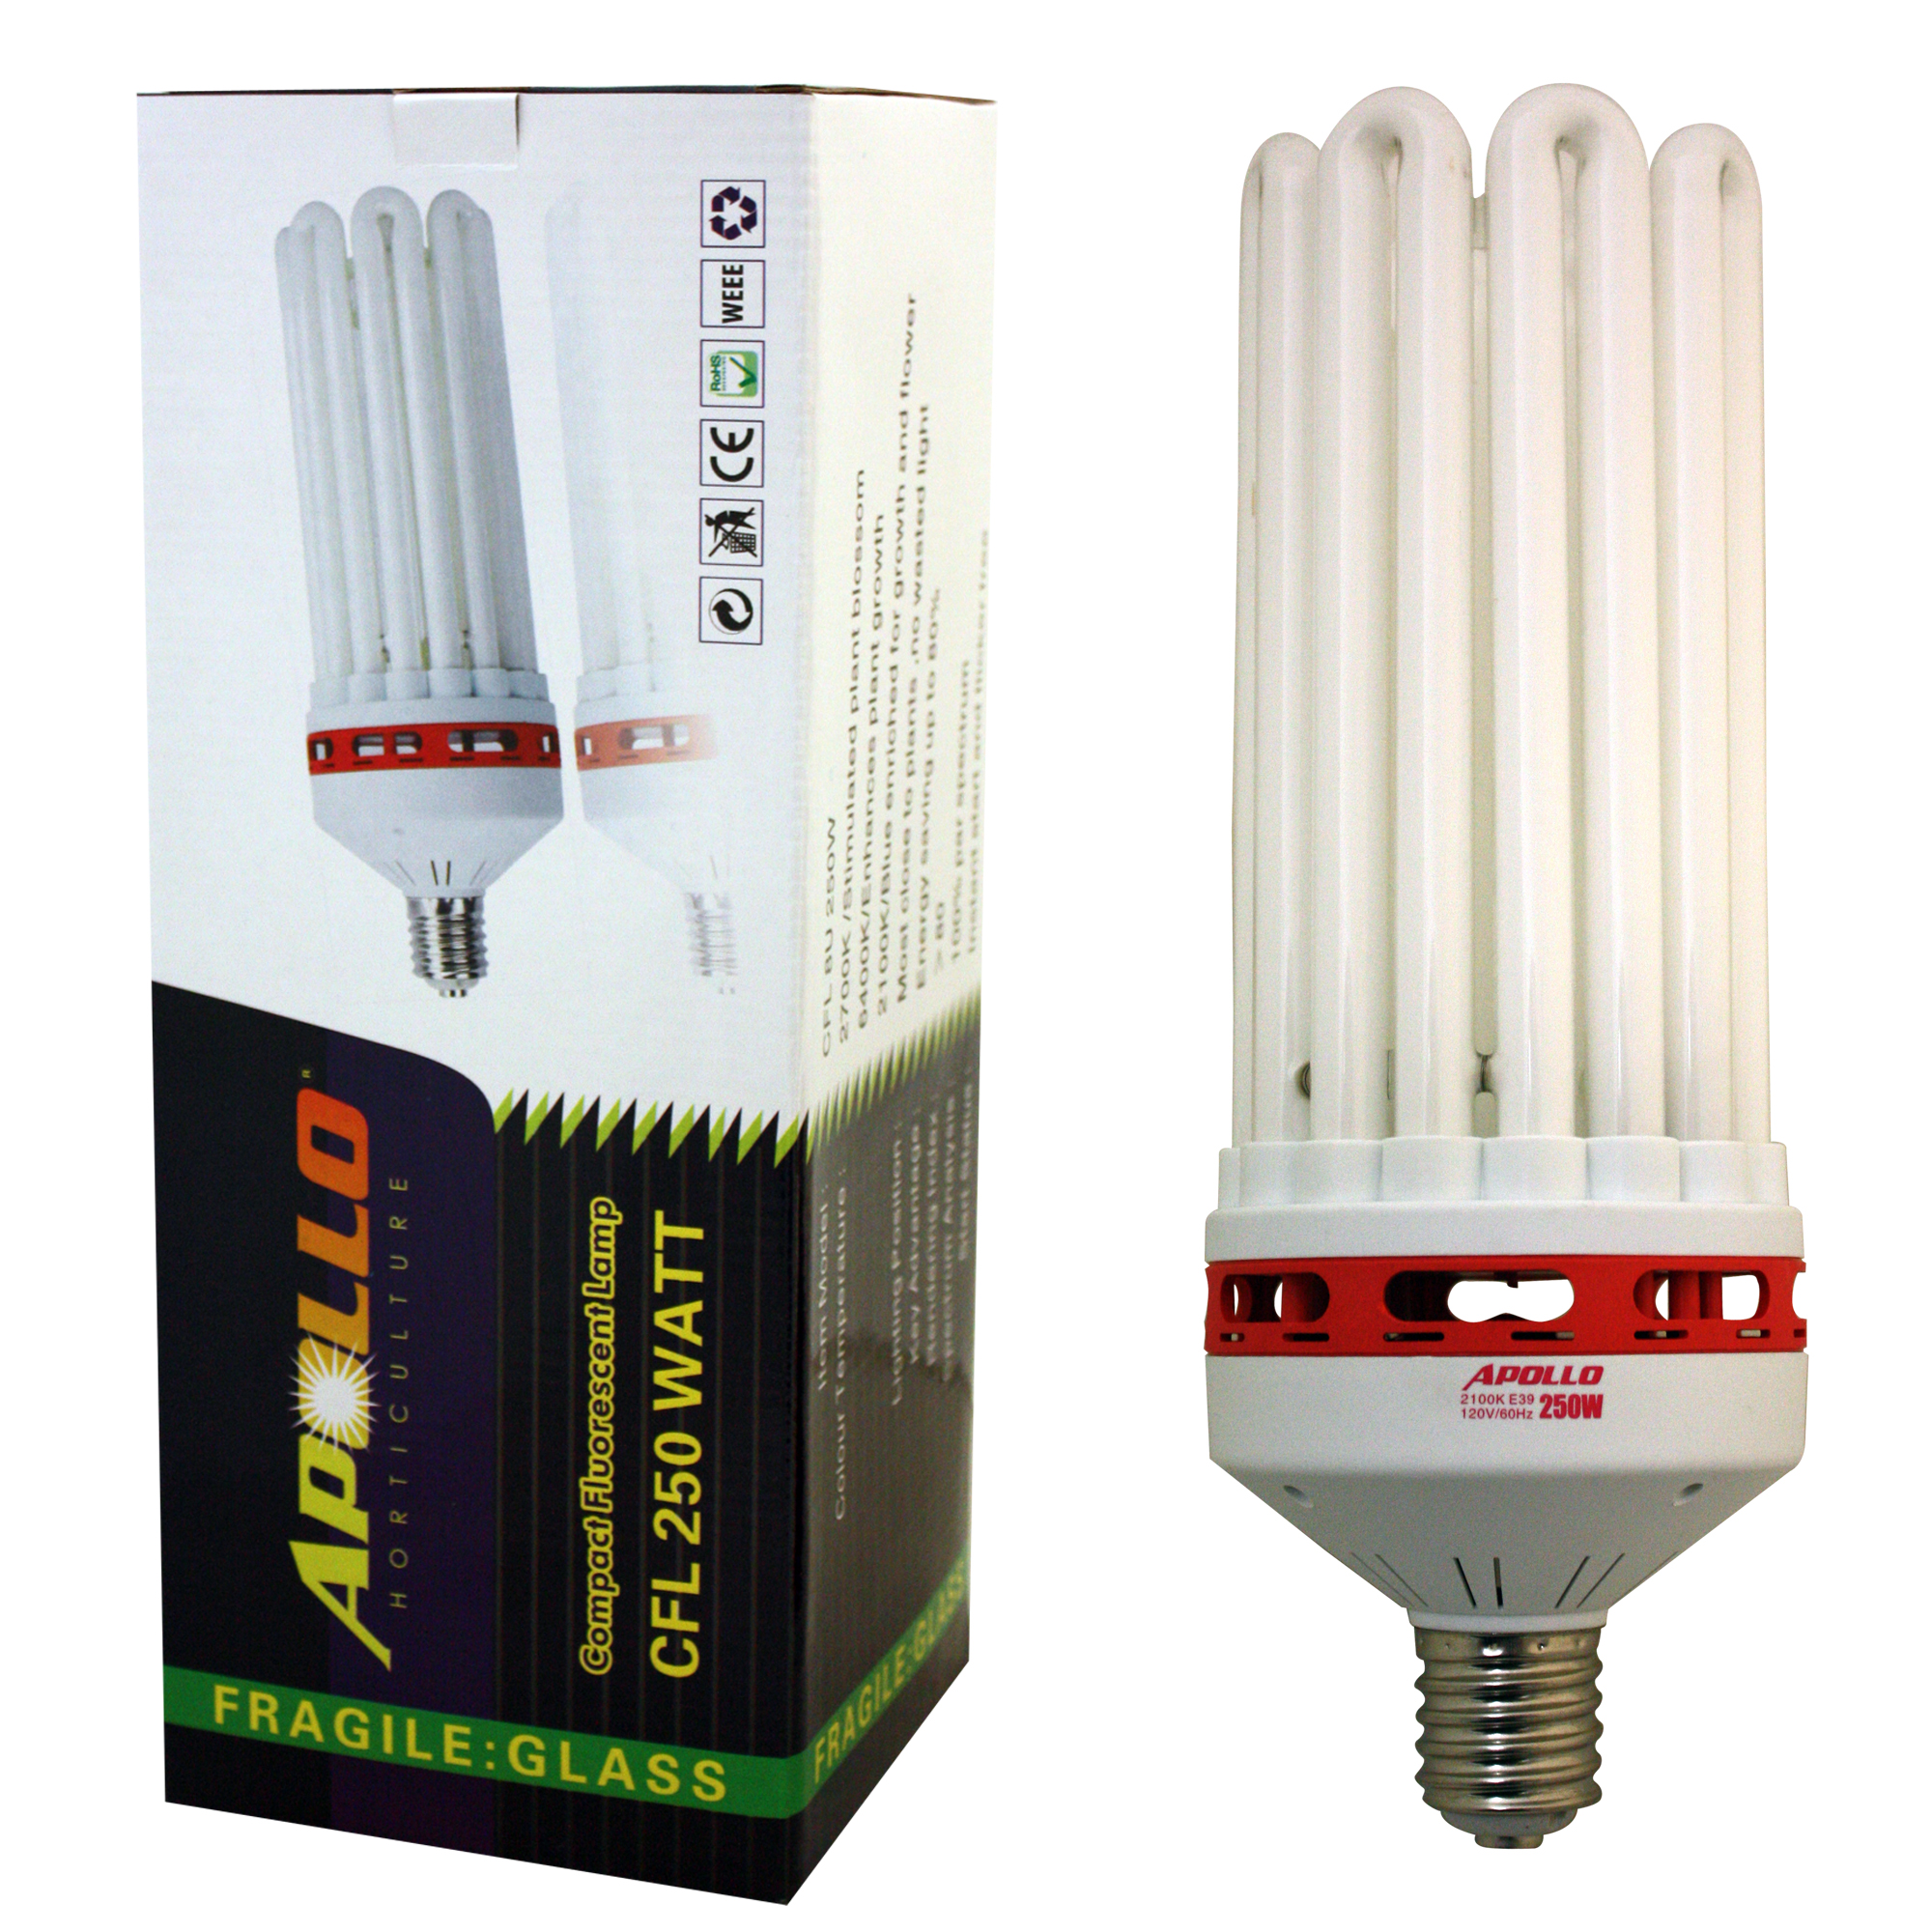 Apollo Horticulture 250 Watt CFL Compact Fluorescent Grow Light Bulb of 2700K for Plant Growing